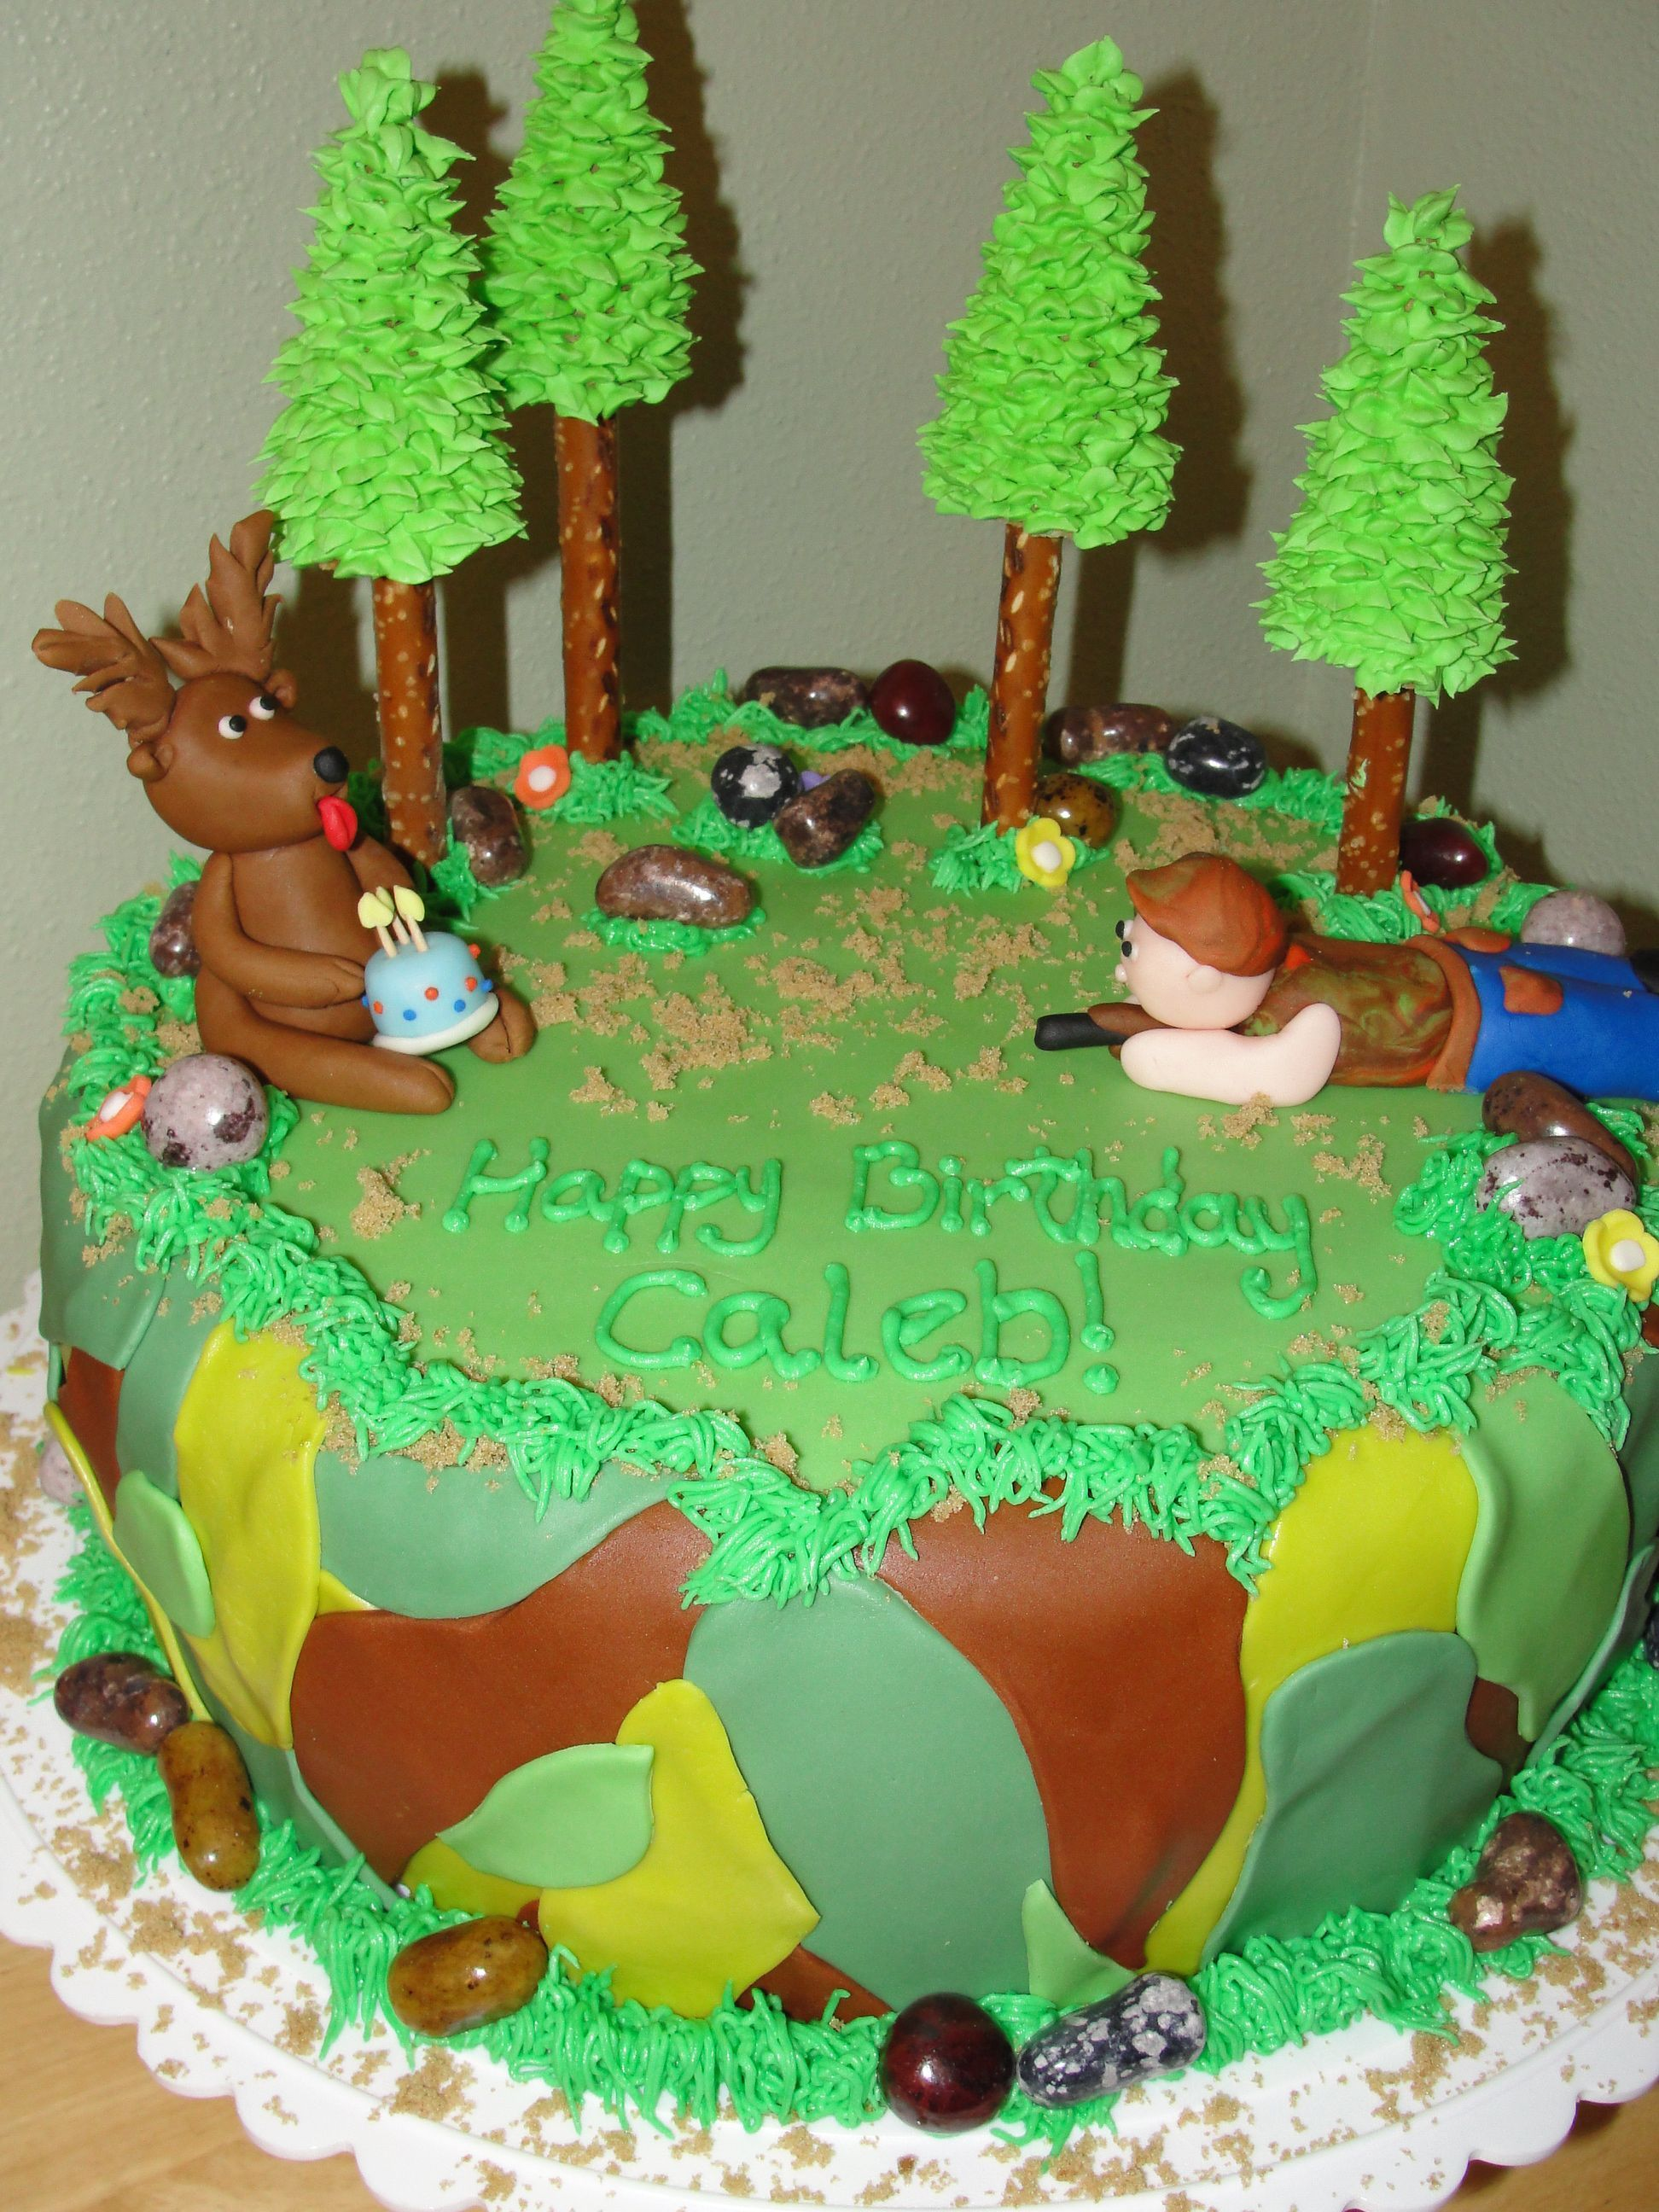 Hunting Themed Birthday Cake This Is A 12 Inch Cake Covered In